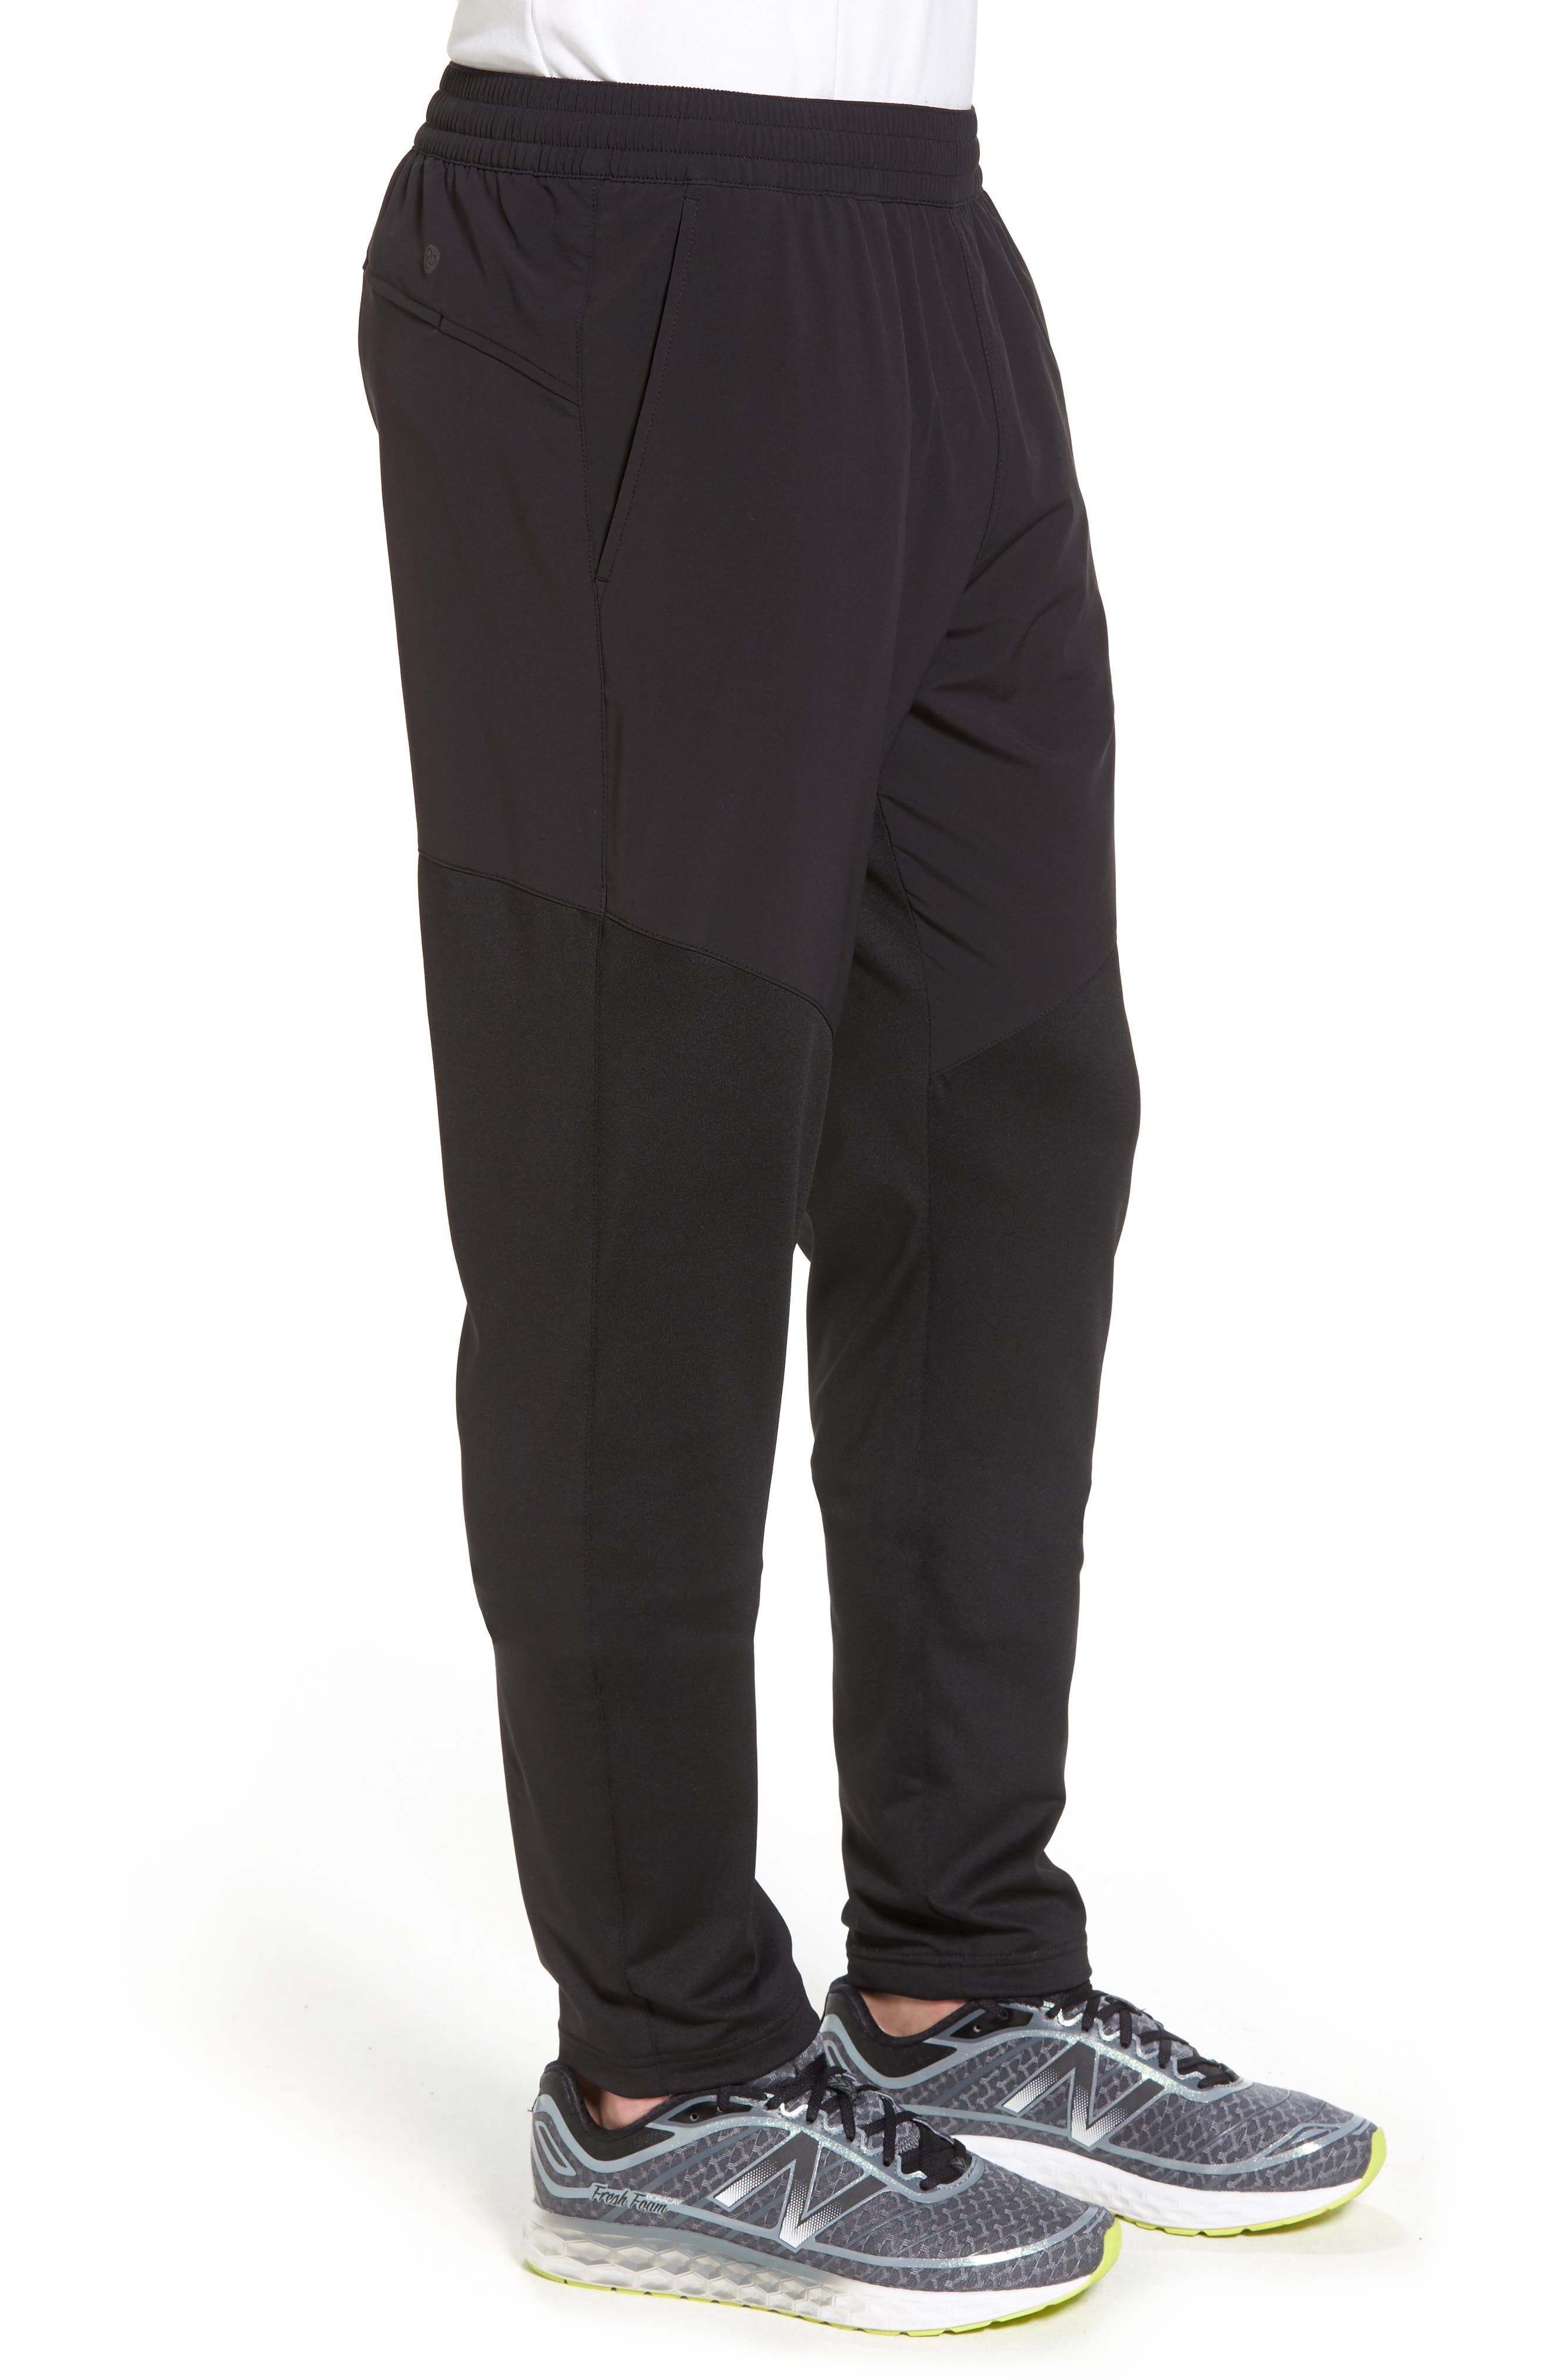 Graphite Tapered Athletic Pants,                             Alternate thumbnail 3, color,                             001